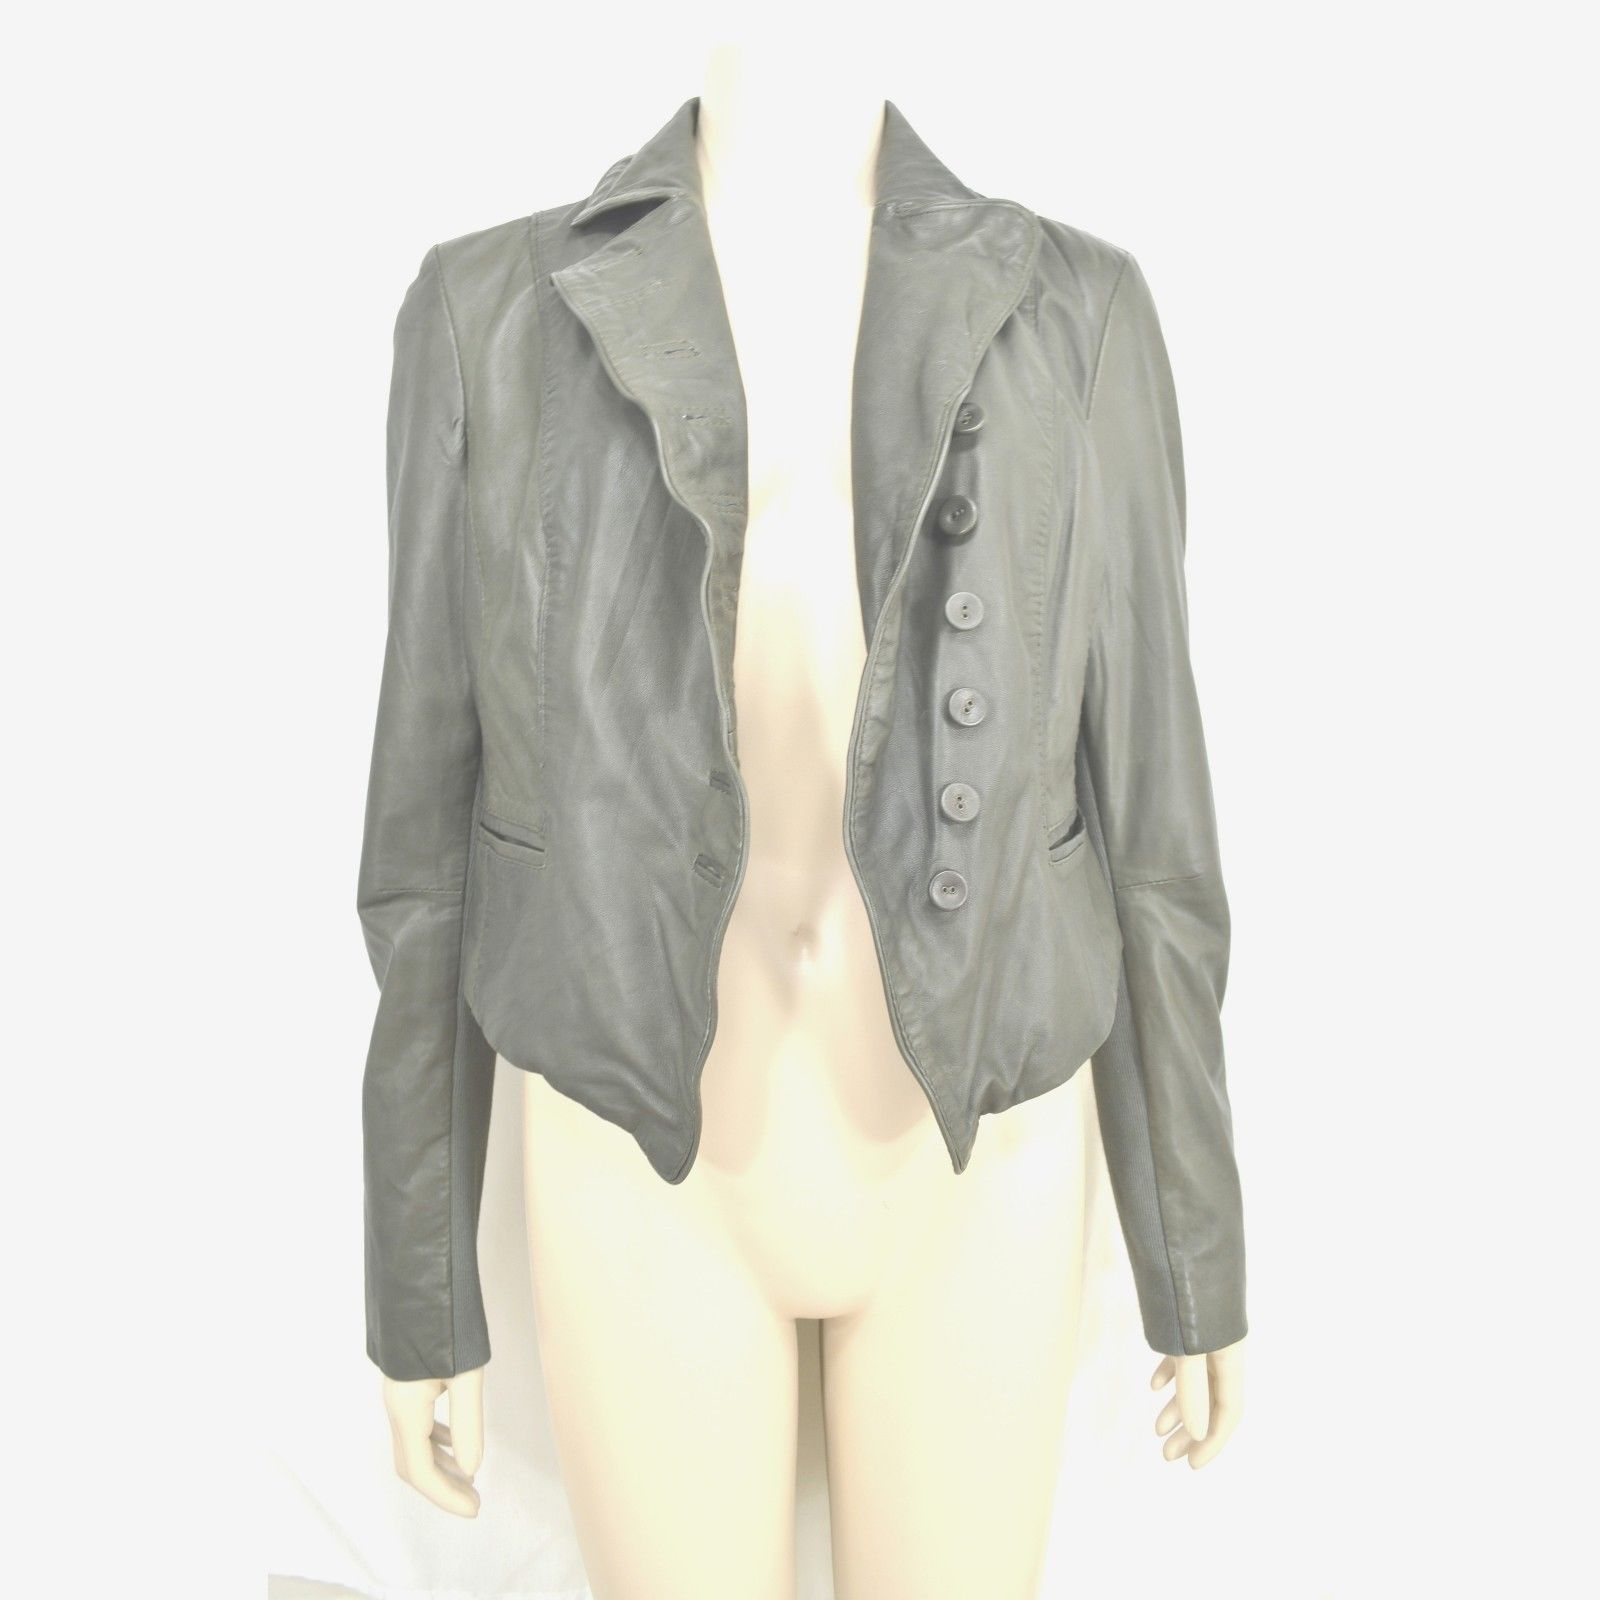 MUUBAA lambskin soft leather jacket SZ 8 Moss Army Gray asymmetric buttoned image 11